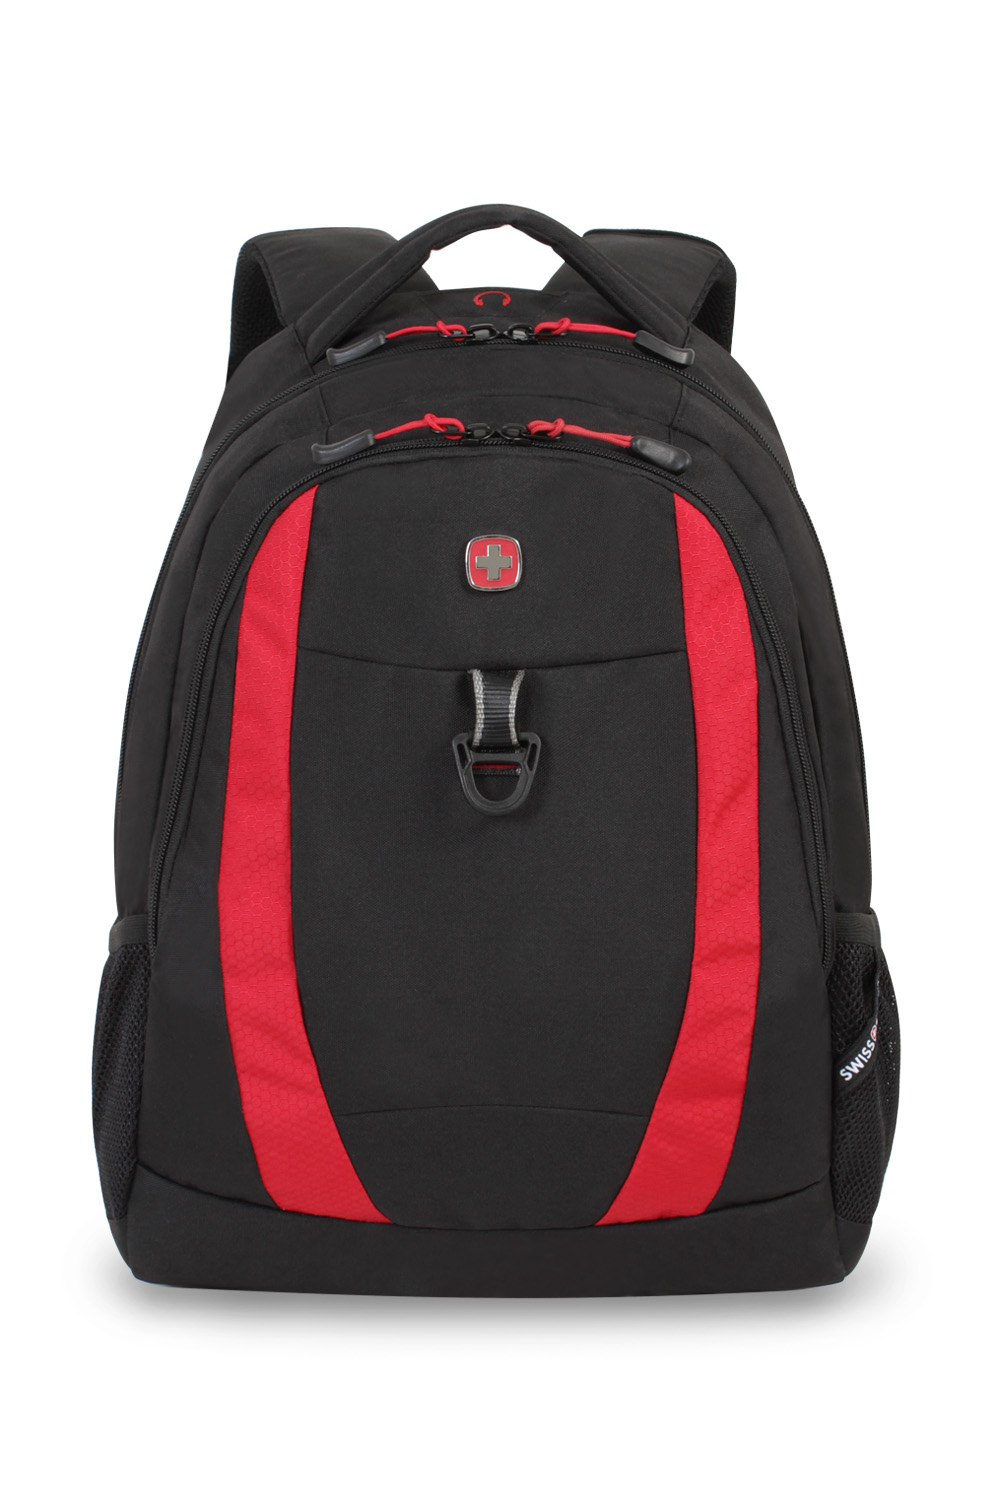 SWISSGEAR 6969 Backpack - Black/Red